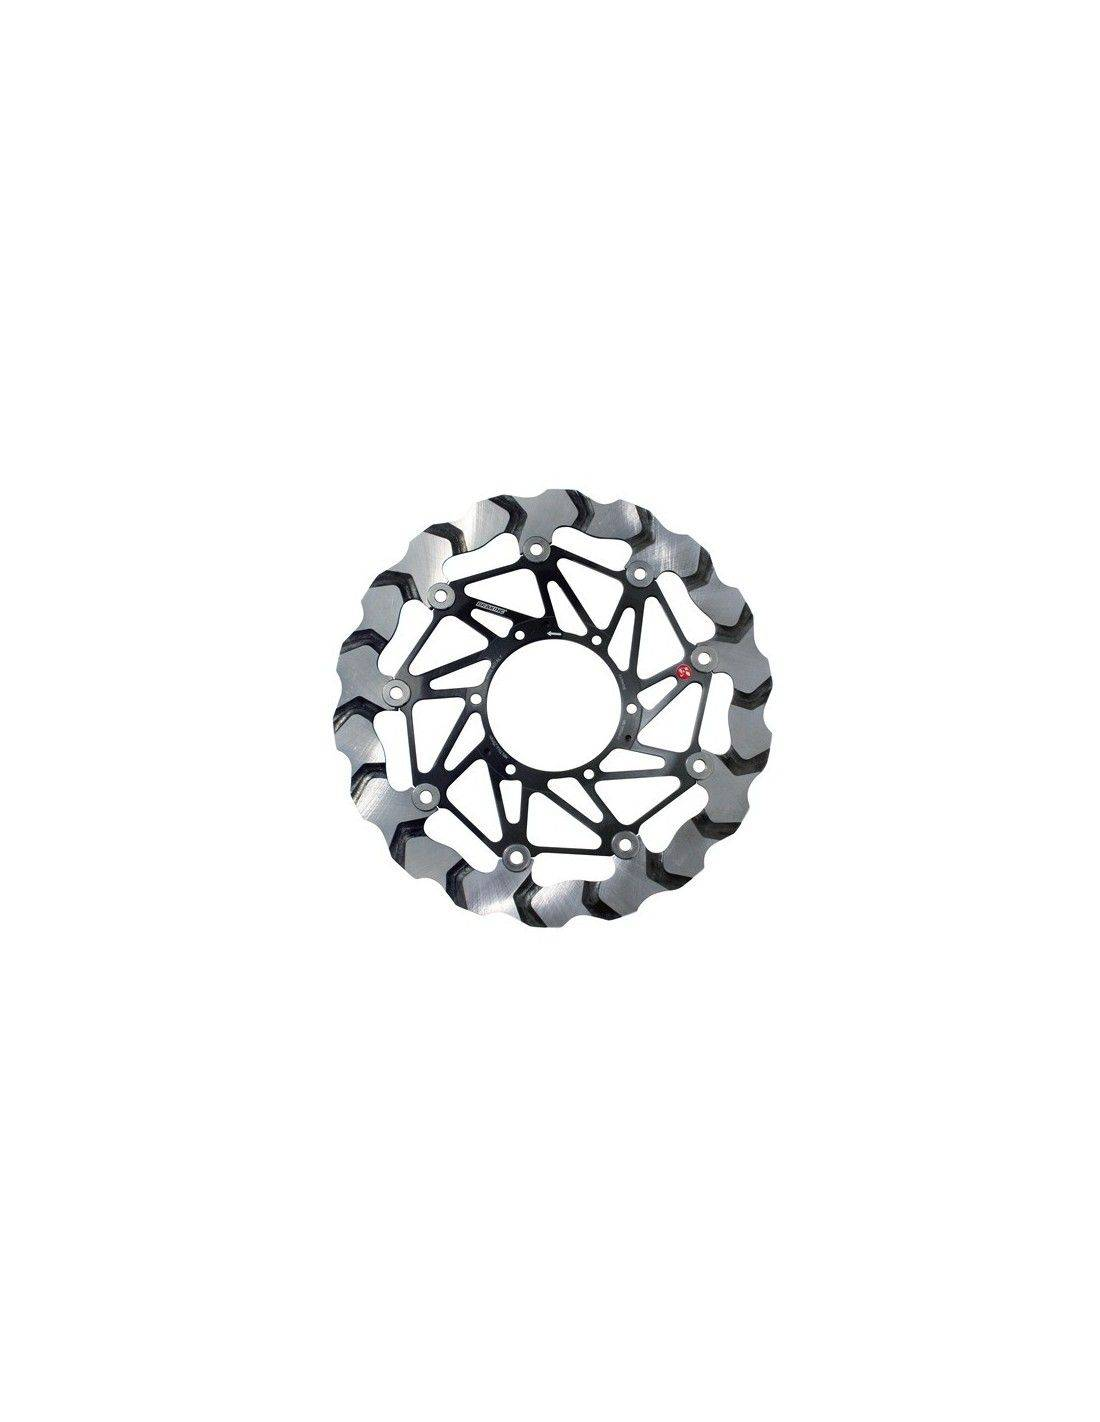 BY795 Braking Batfly Strada floating brake disc racing